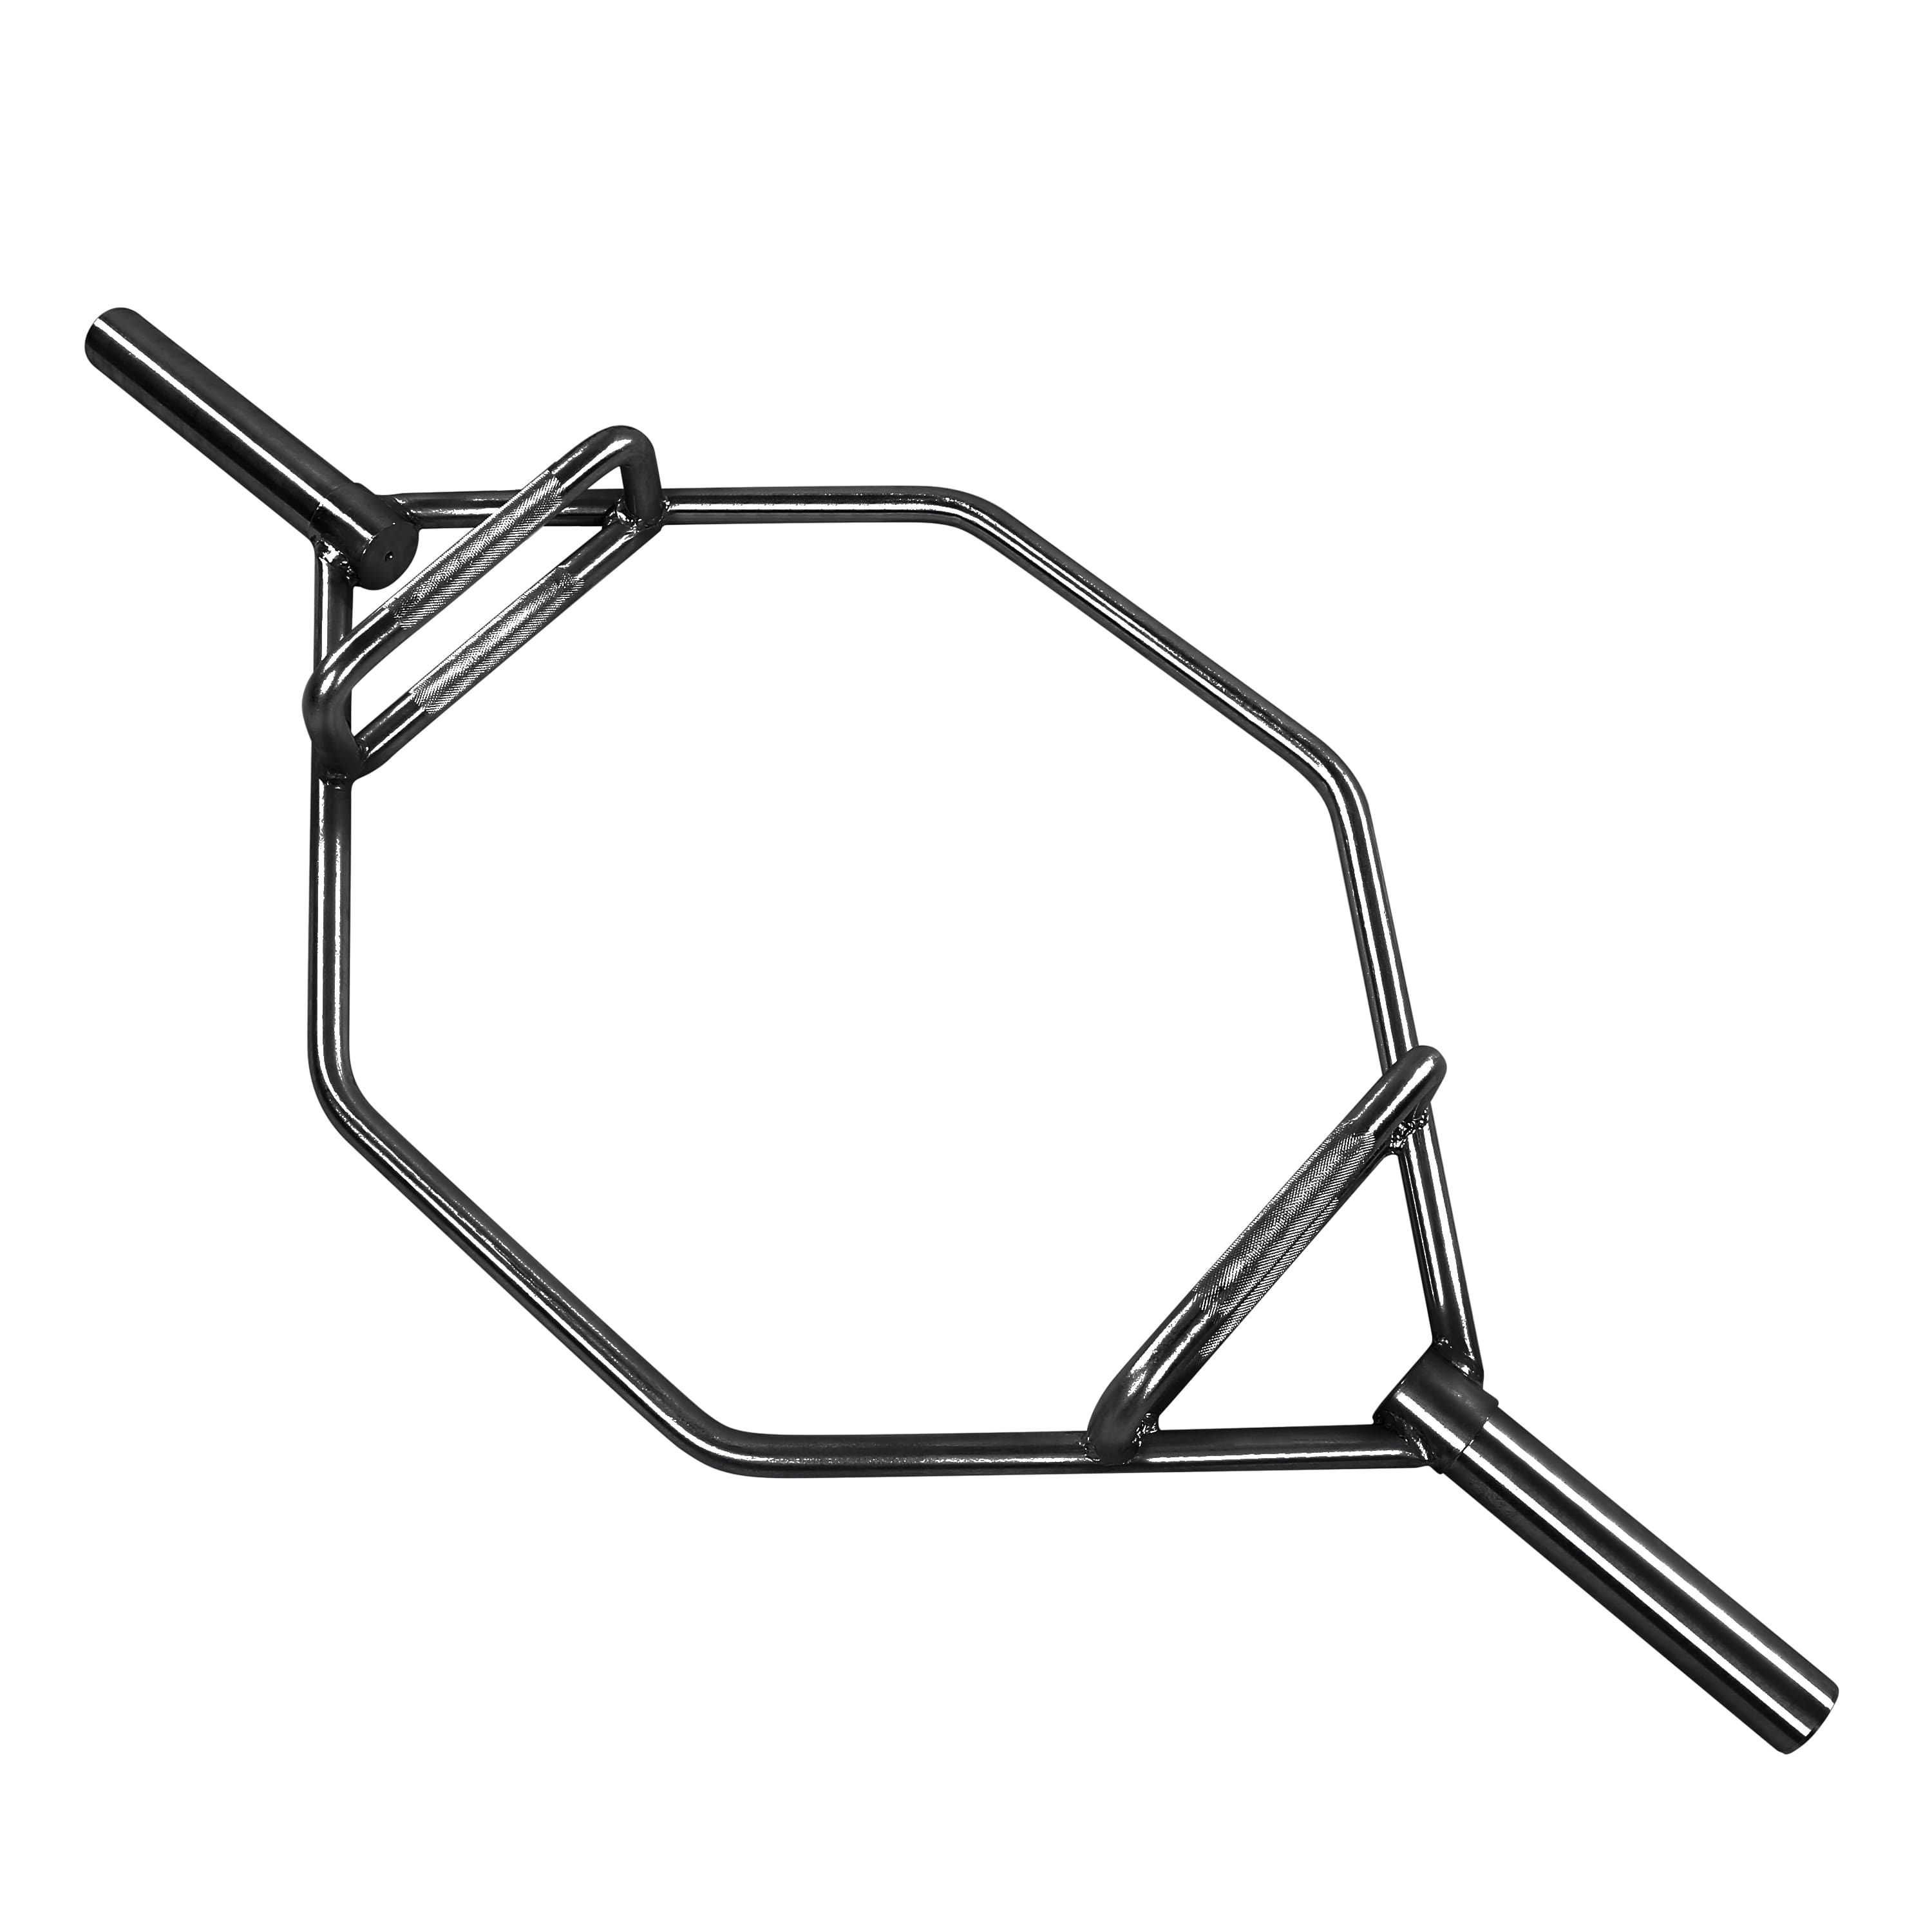 Everyday Essentials Olympic 2-Inch Hex Weight Lifting Trap Bar, 1000-Pound Capacity, 69.99$ + tax